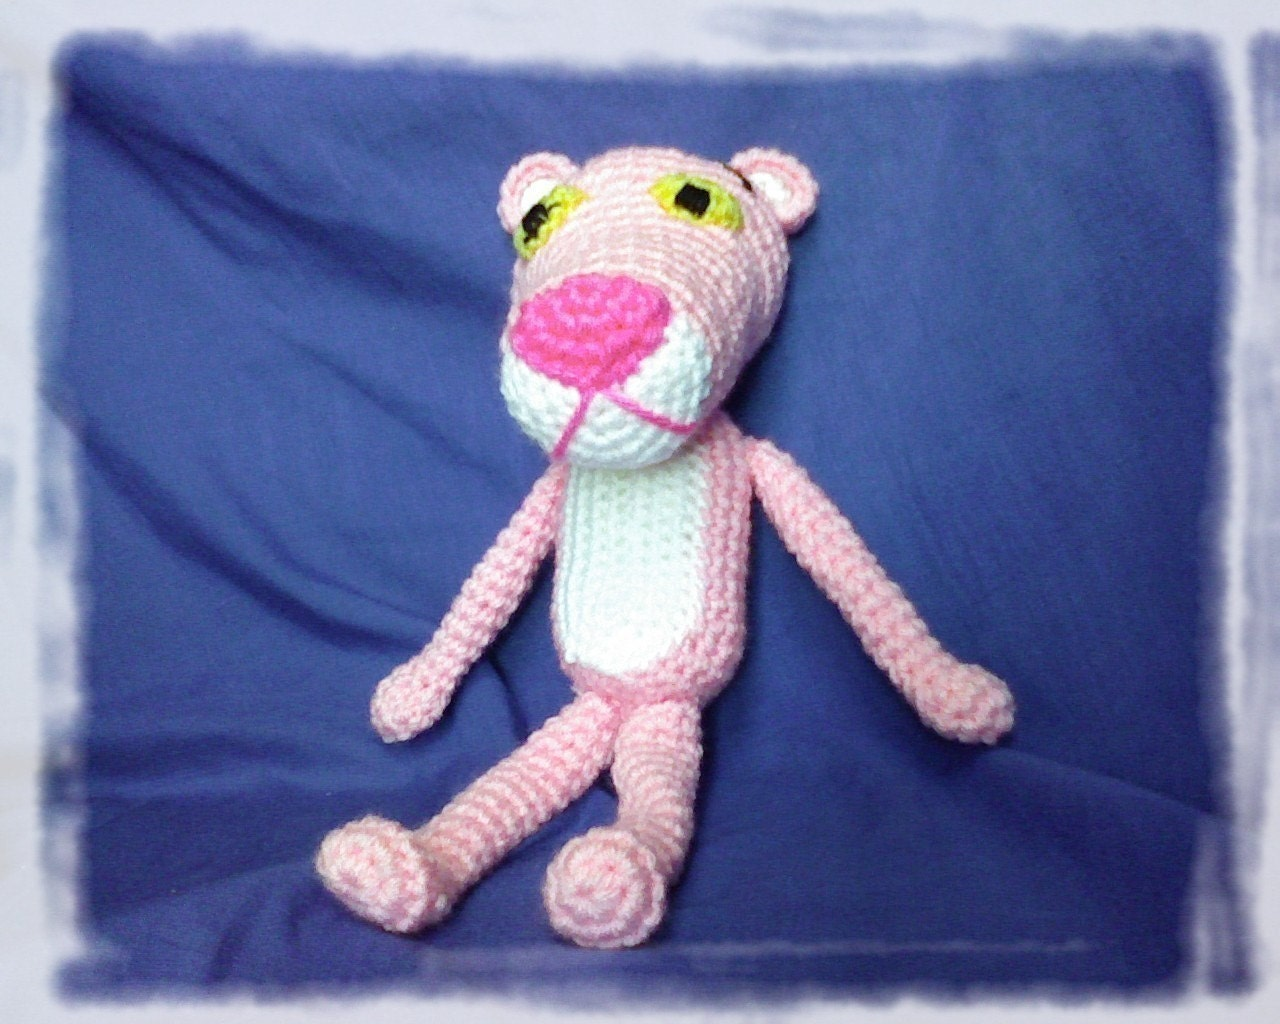 Amigurumi Free Pattern Pink Panther : PDF The Pink Panther 11.5 inches amigurumi doll crochet